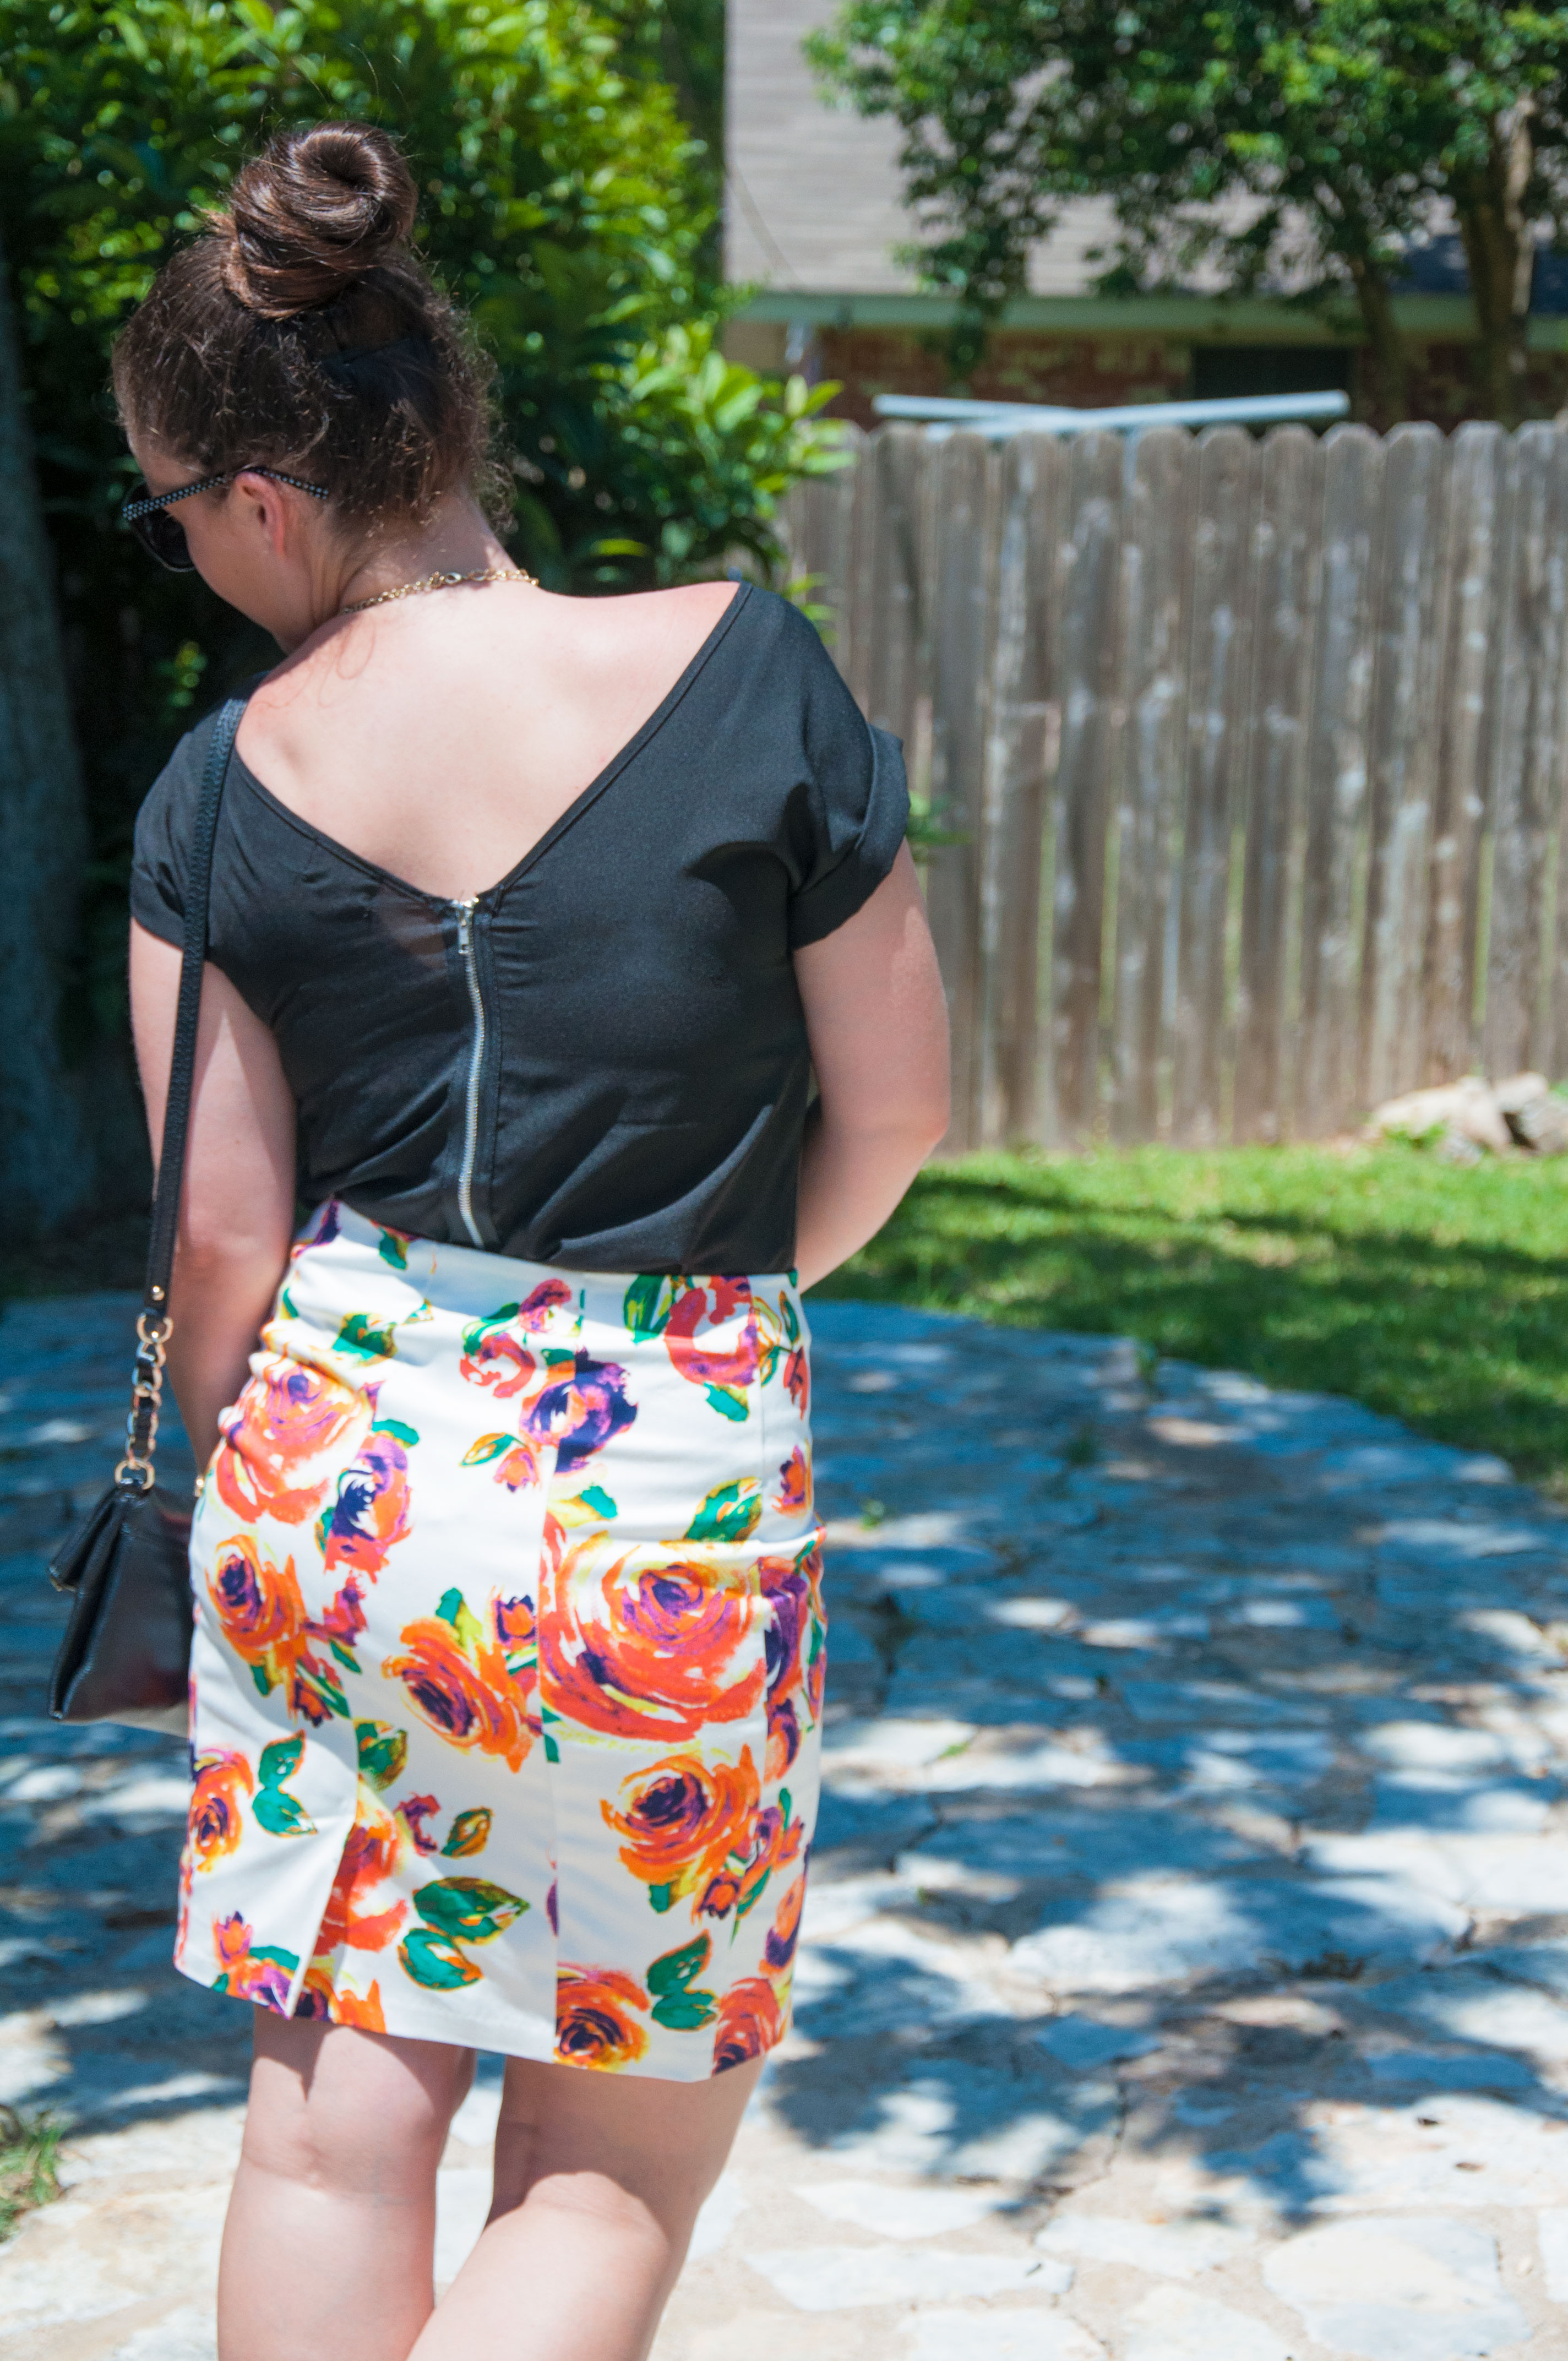 Floral skirt with black top